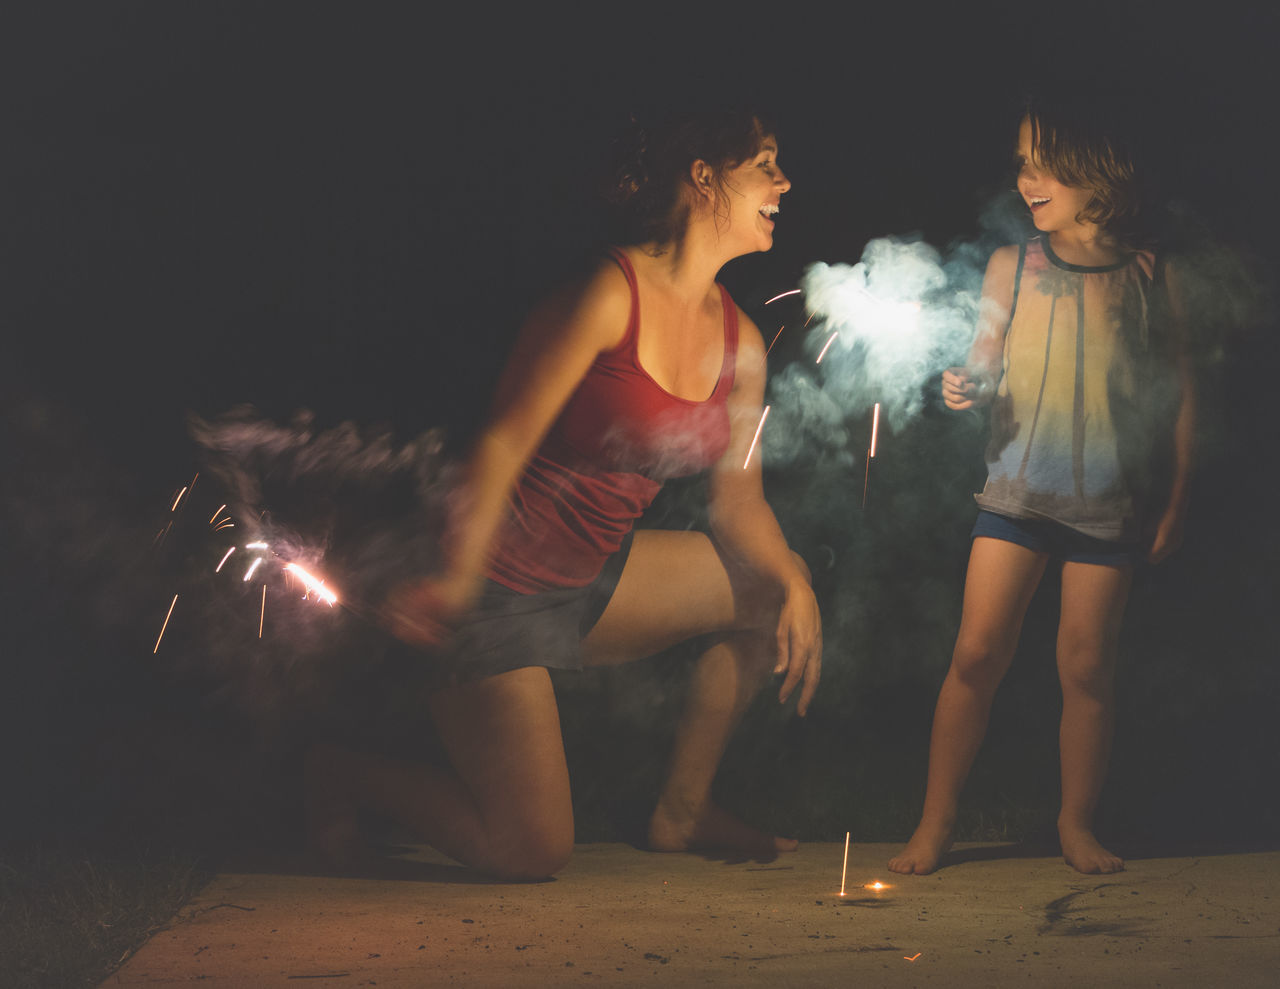 Beautiful stock photos of 4th of july, 35-39 Years, 6-7 Years, Arts Culture And Entertainment, Blurred Motion